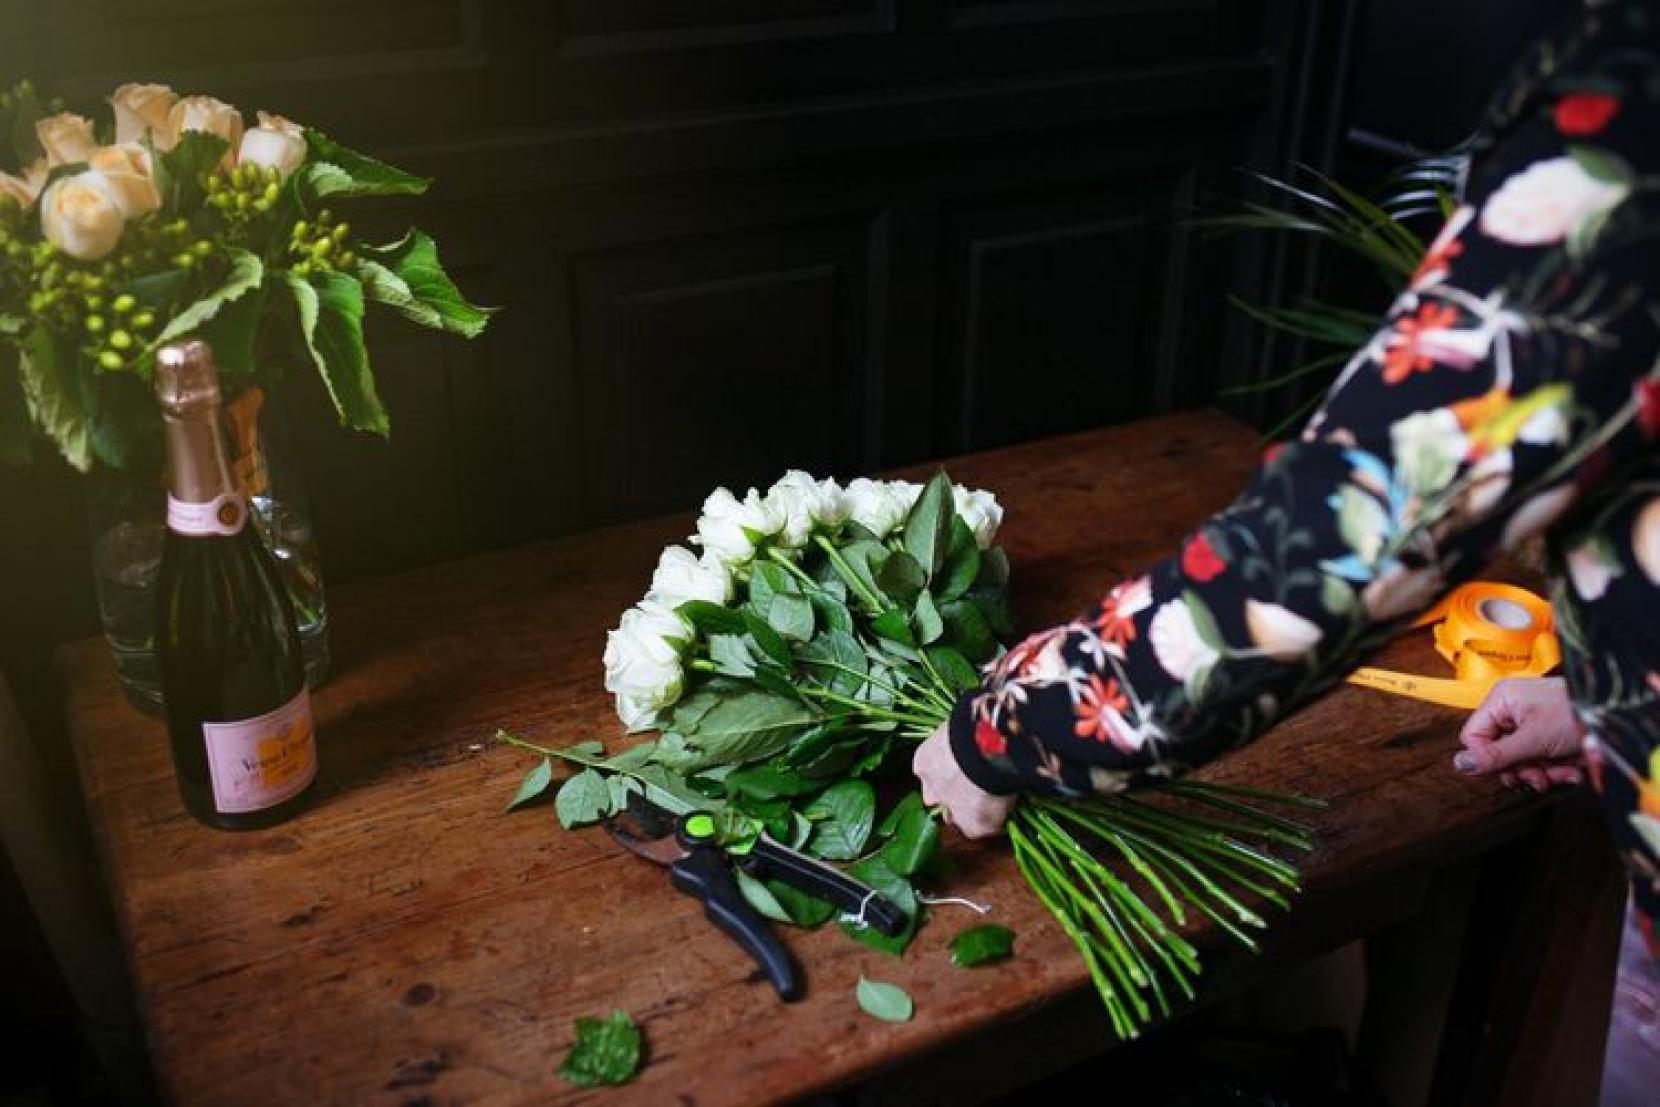 T shirt design queenstown - In The Pink S Expert Florist Victoria Lund Has Teamed Up With Veuve Clicquot Ros And Queenstown Restaurant Rata To Offer A Floral Masterclass With